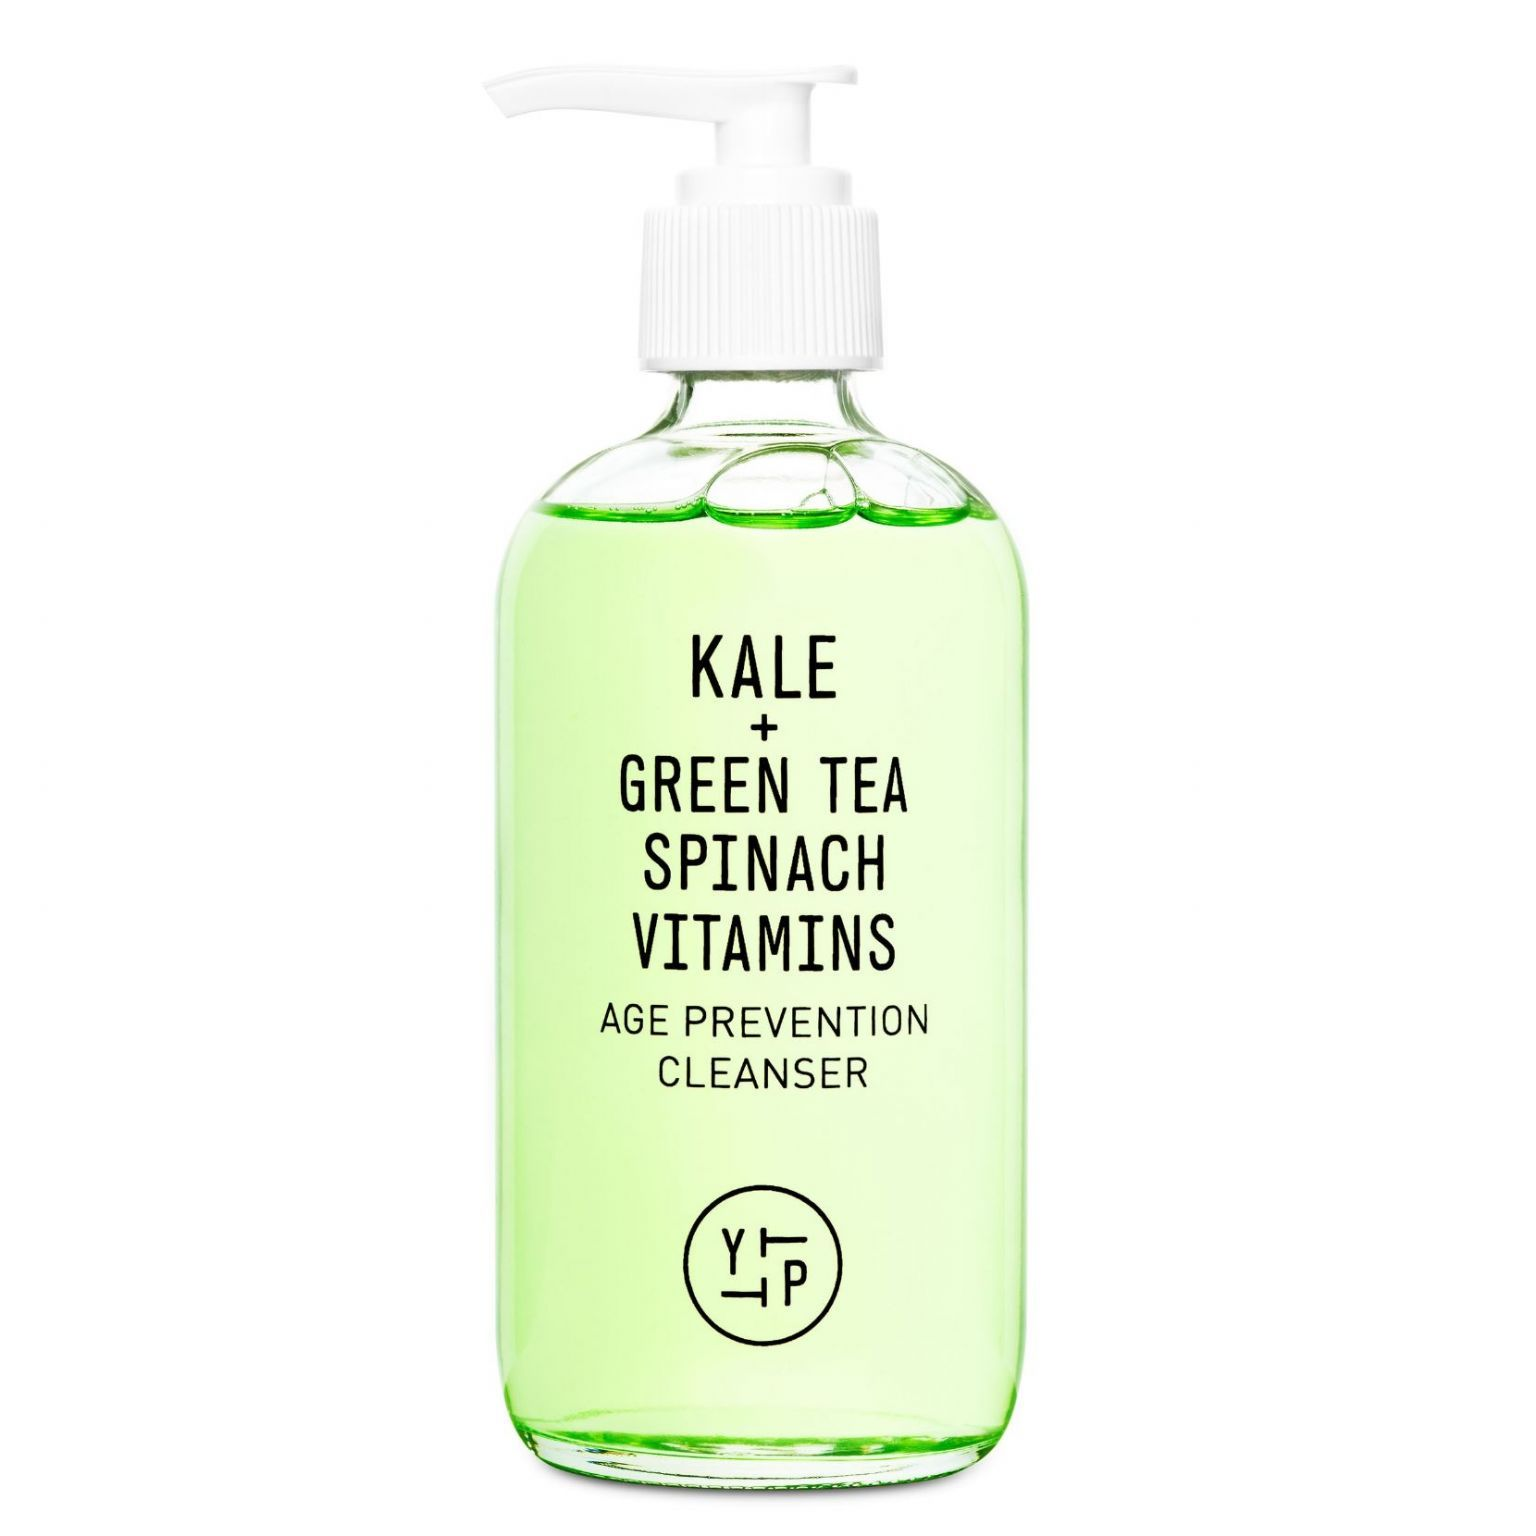 Kale + Green Tea Spinach Vitamins Age Prevention Cleanser